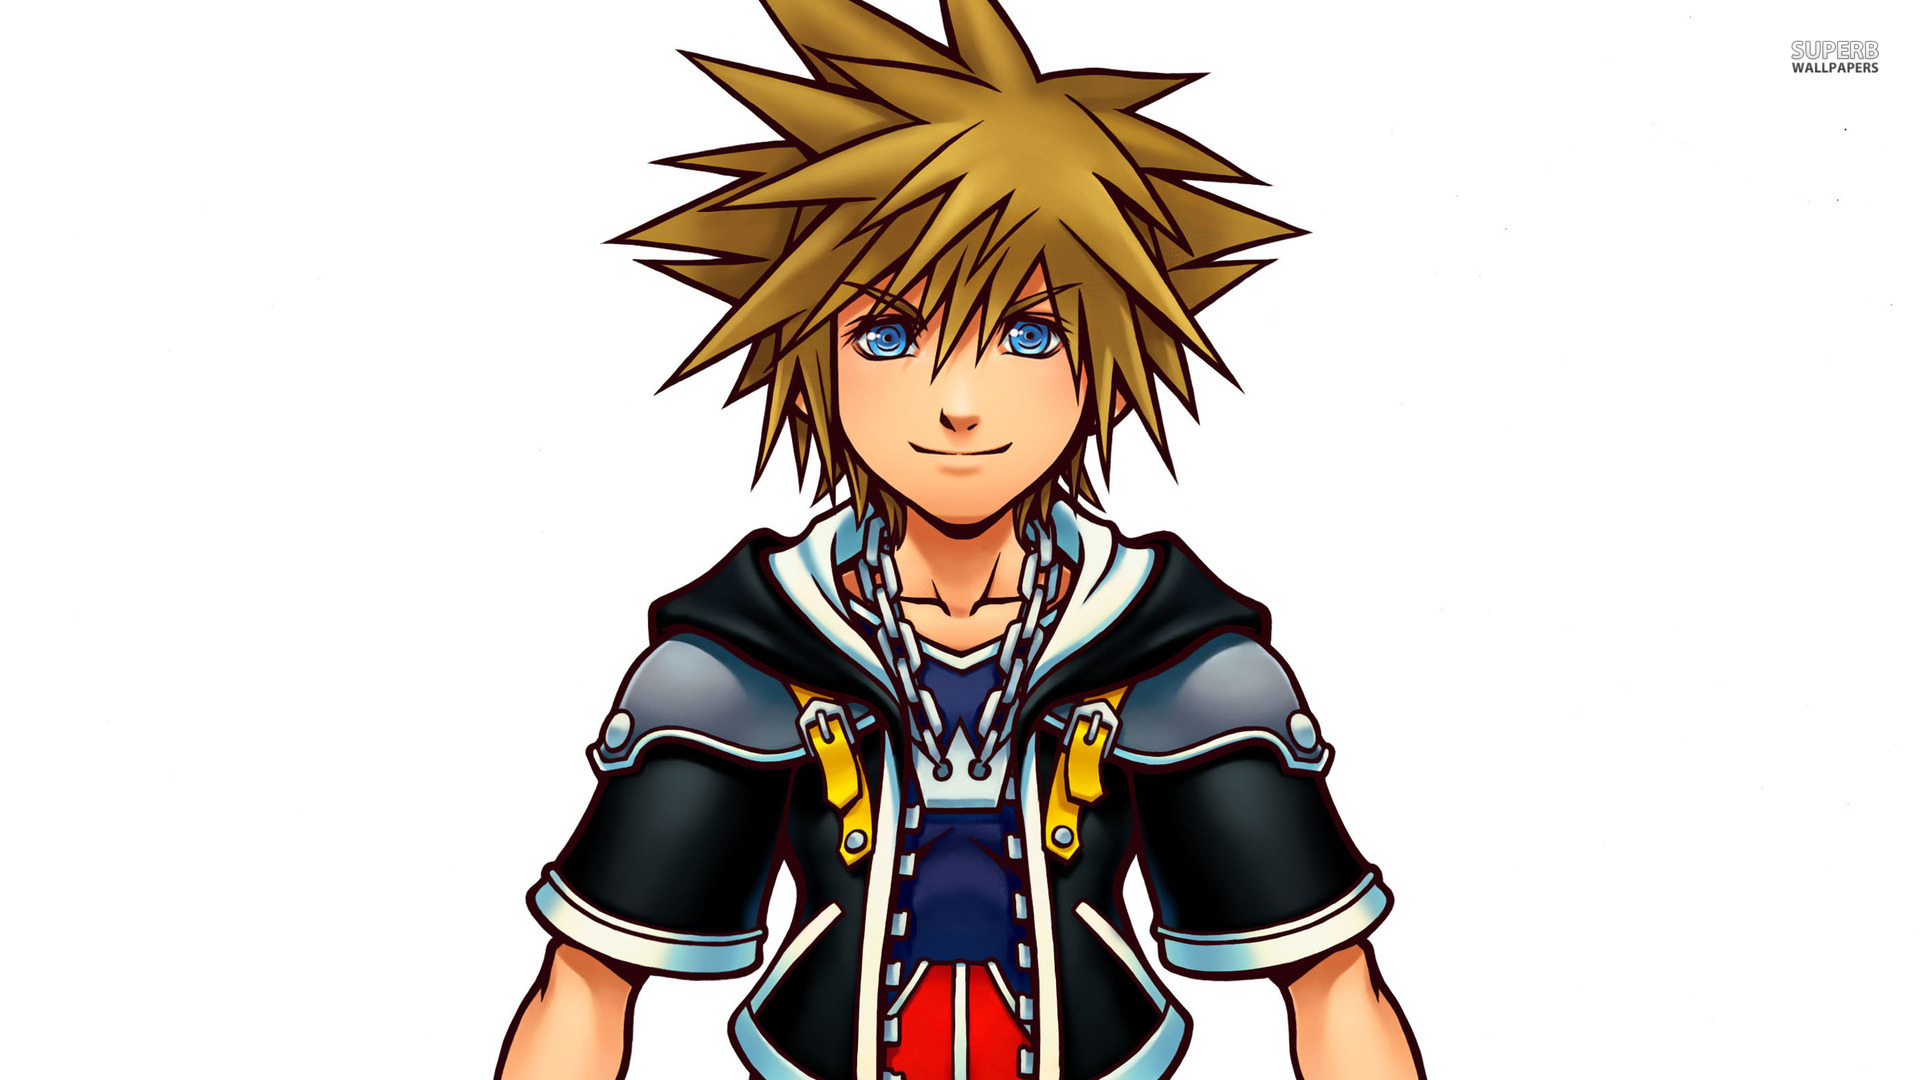 kingdom hearts images - photo #45